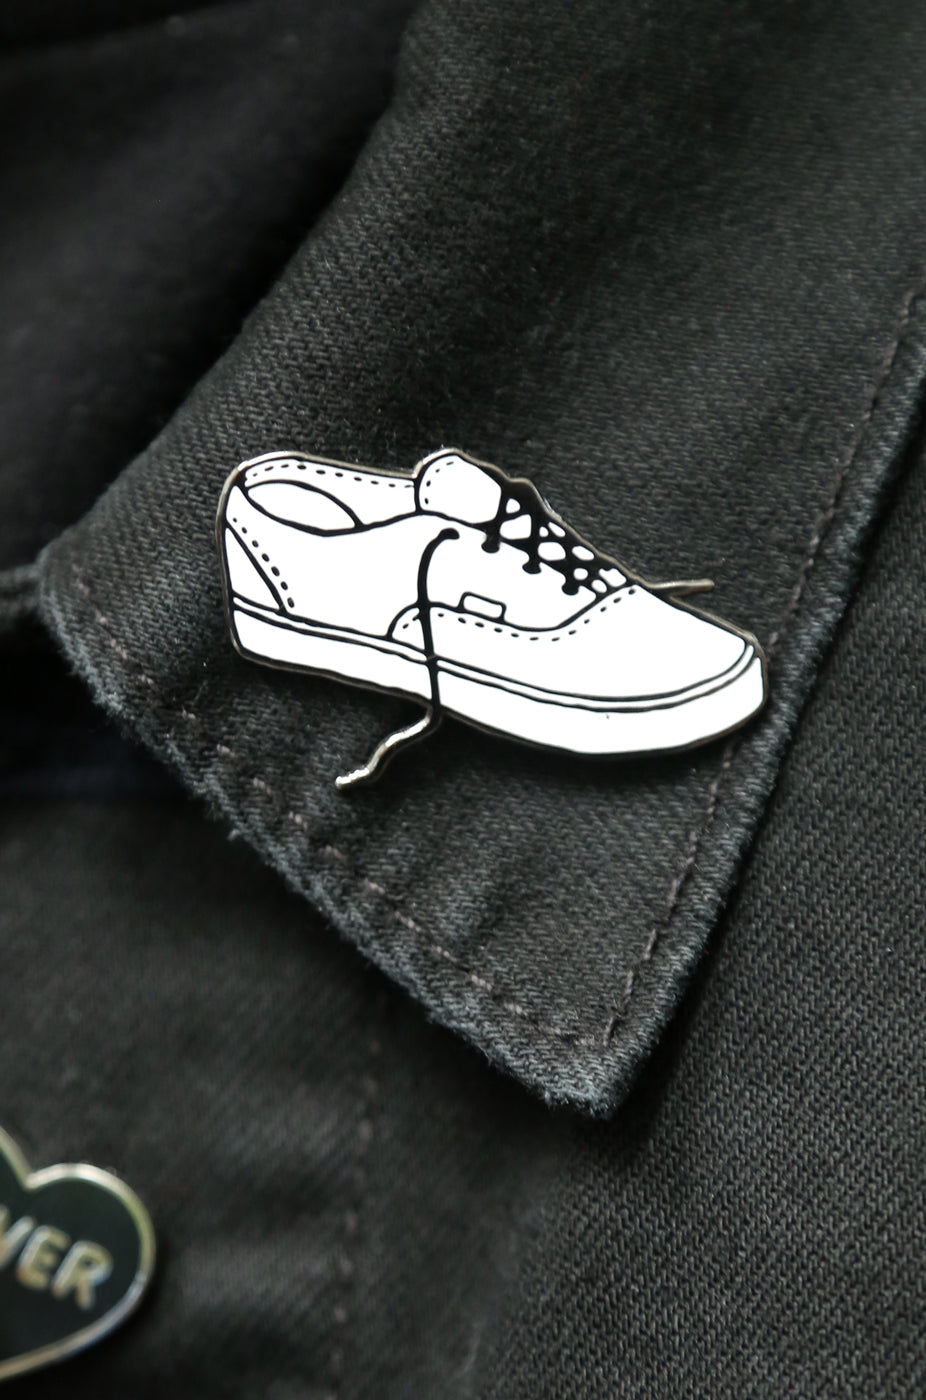 Pin on footwear